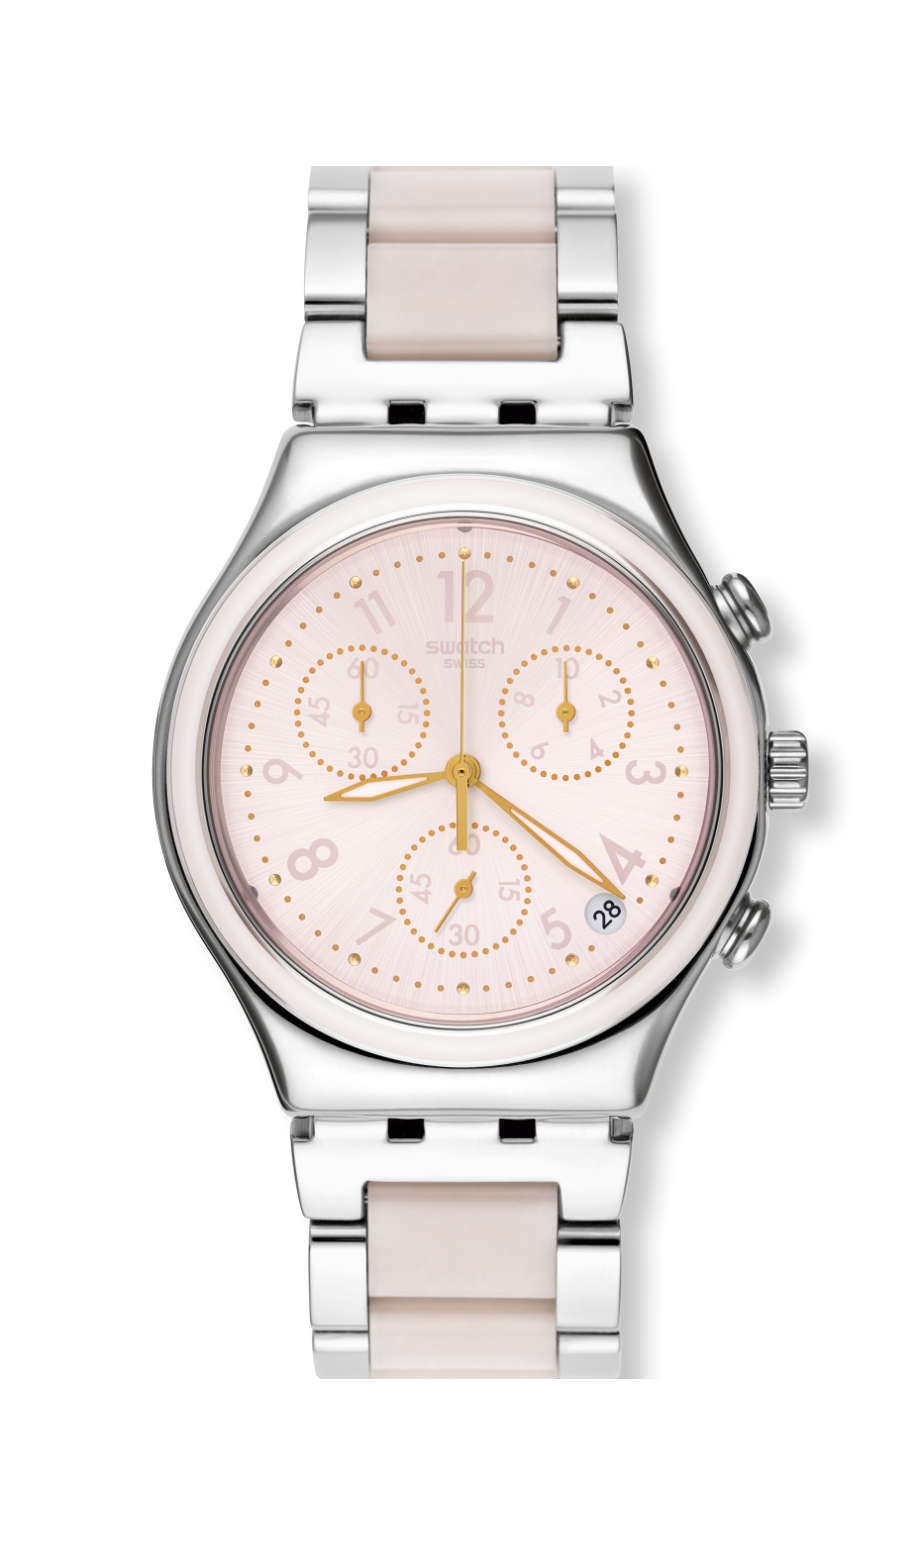 Swatch - DREAMNIGHT ROSE - 1